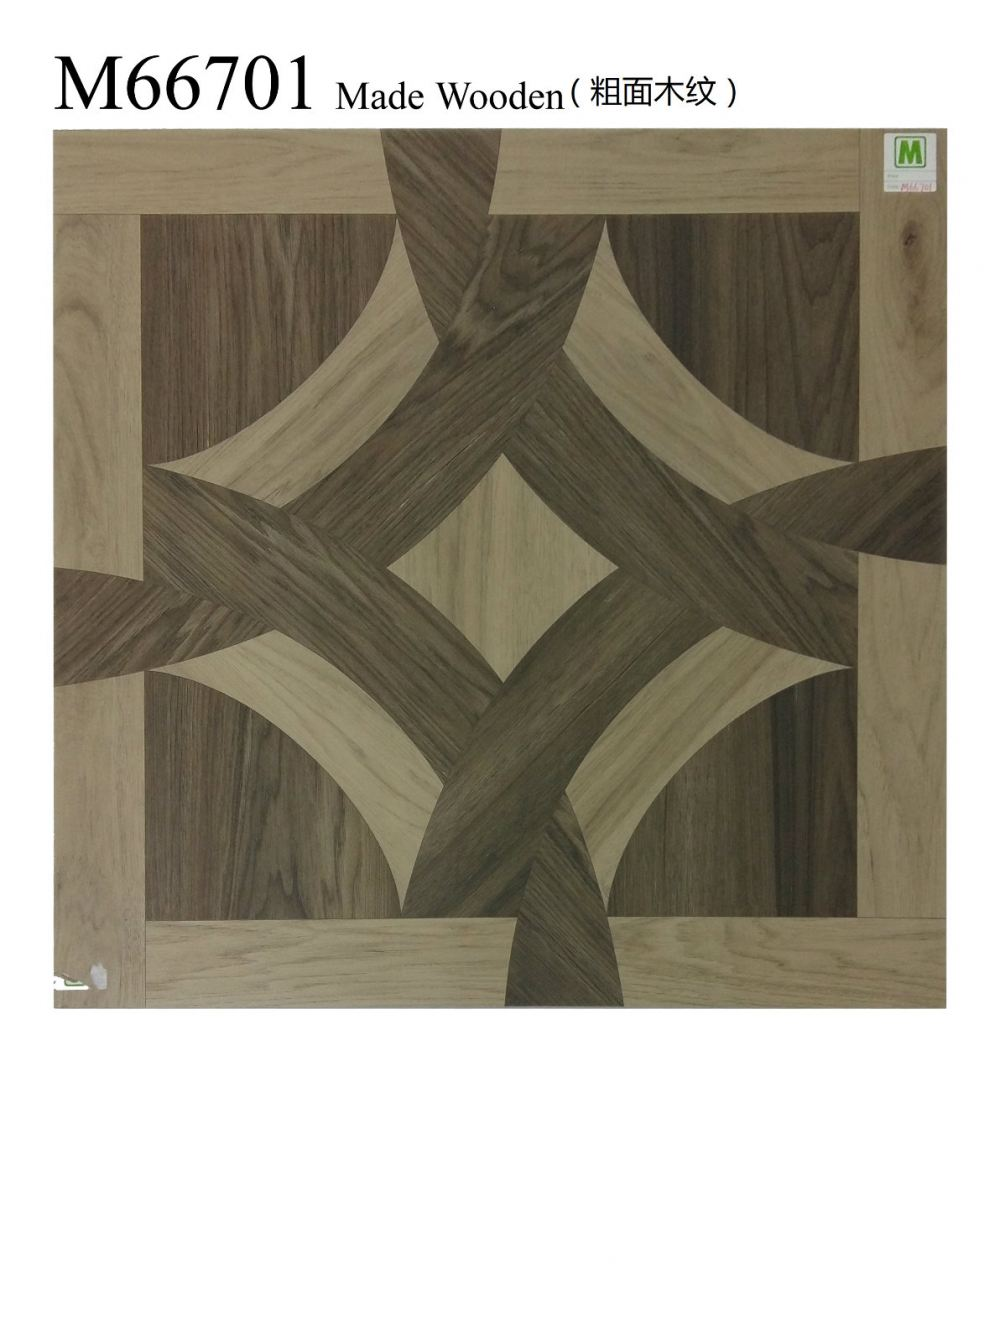 M66701 FLOOR TILES TILE Supplier, Suppliers, Supply, Supplies ~ Itoli Ceramic Sdn Bhd